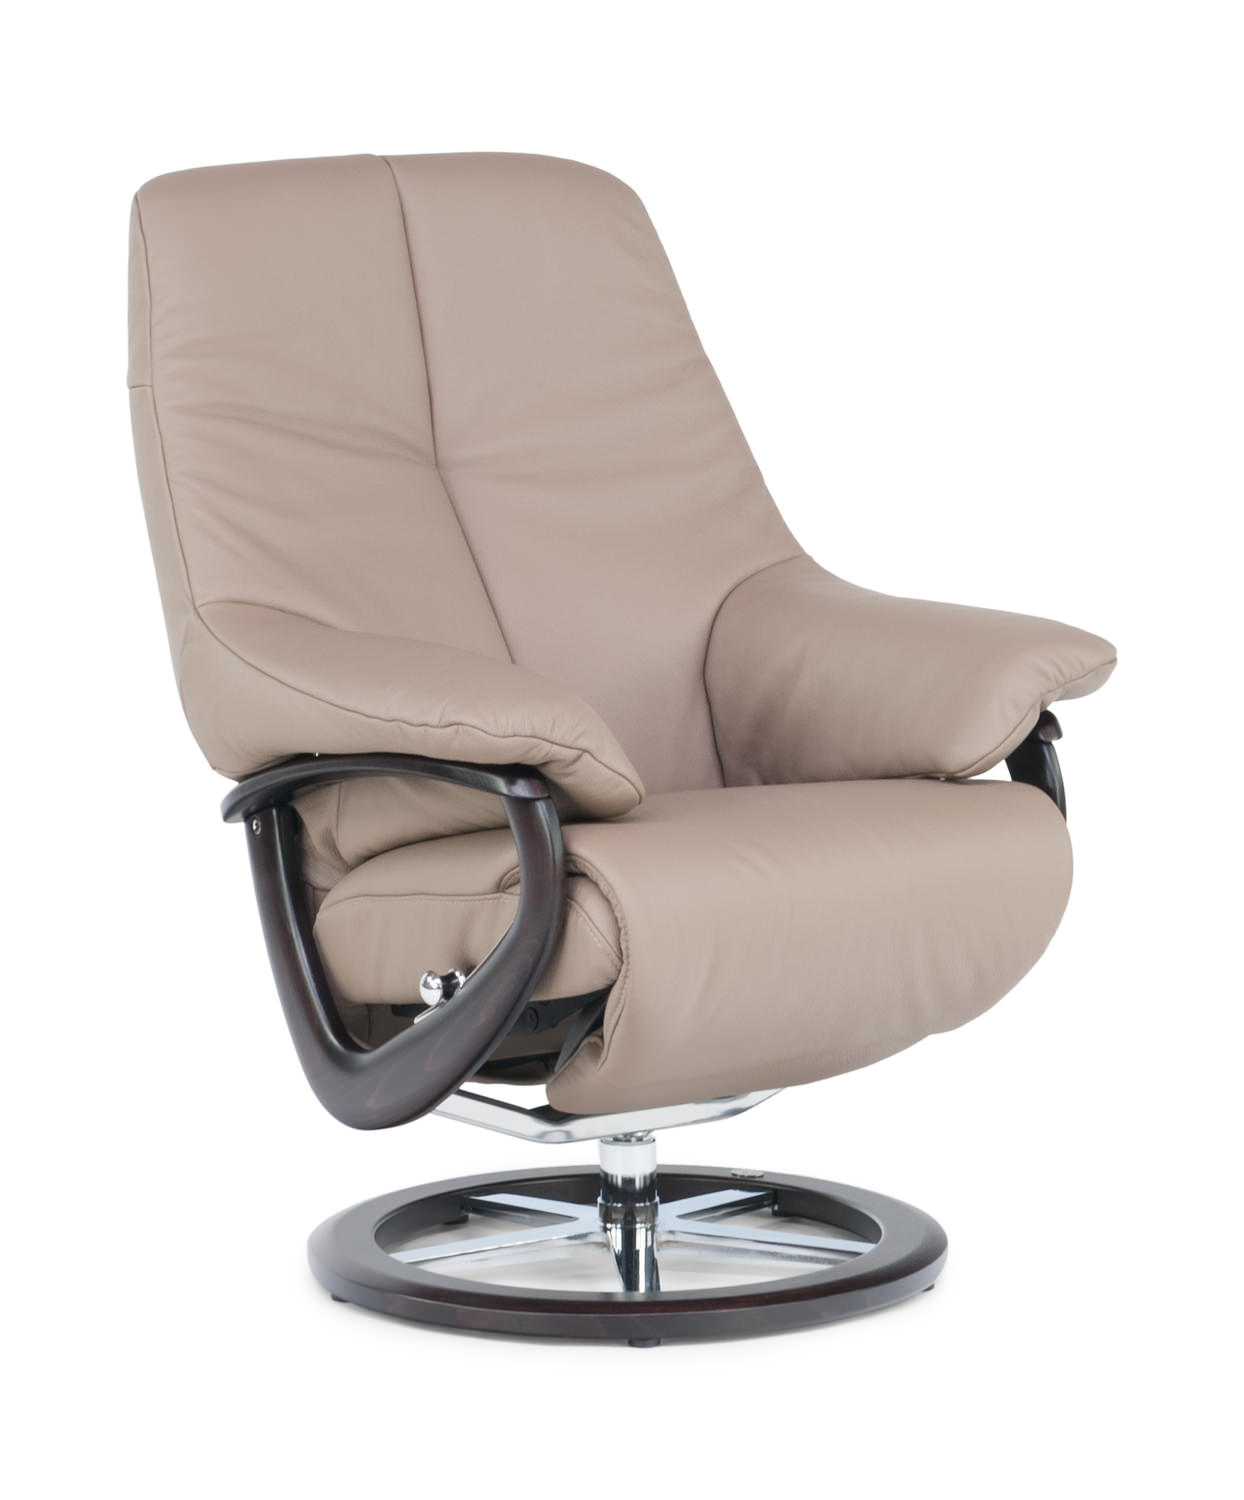 Europe leather swivel recliner